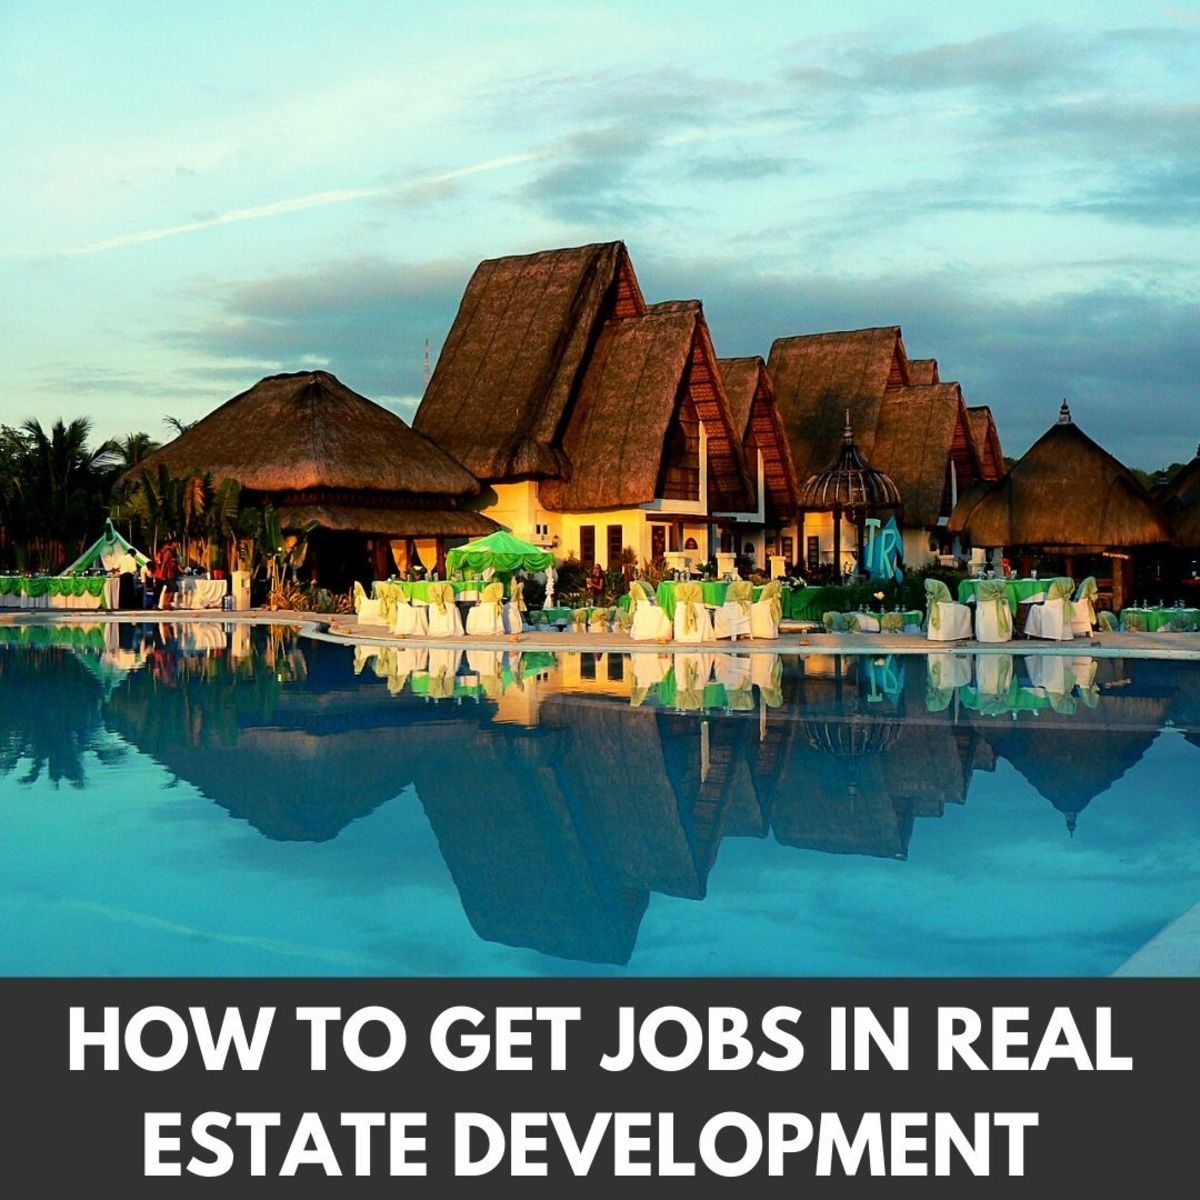 How to Get Jobs in Real Estate Development